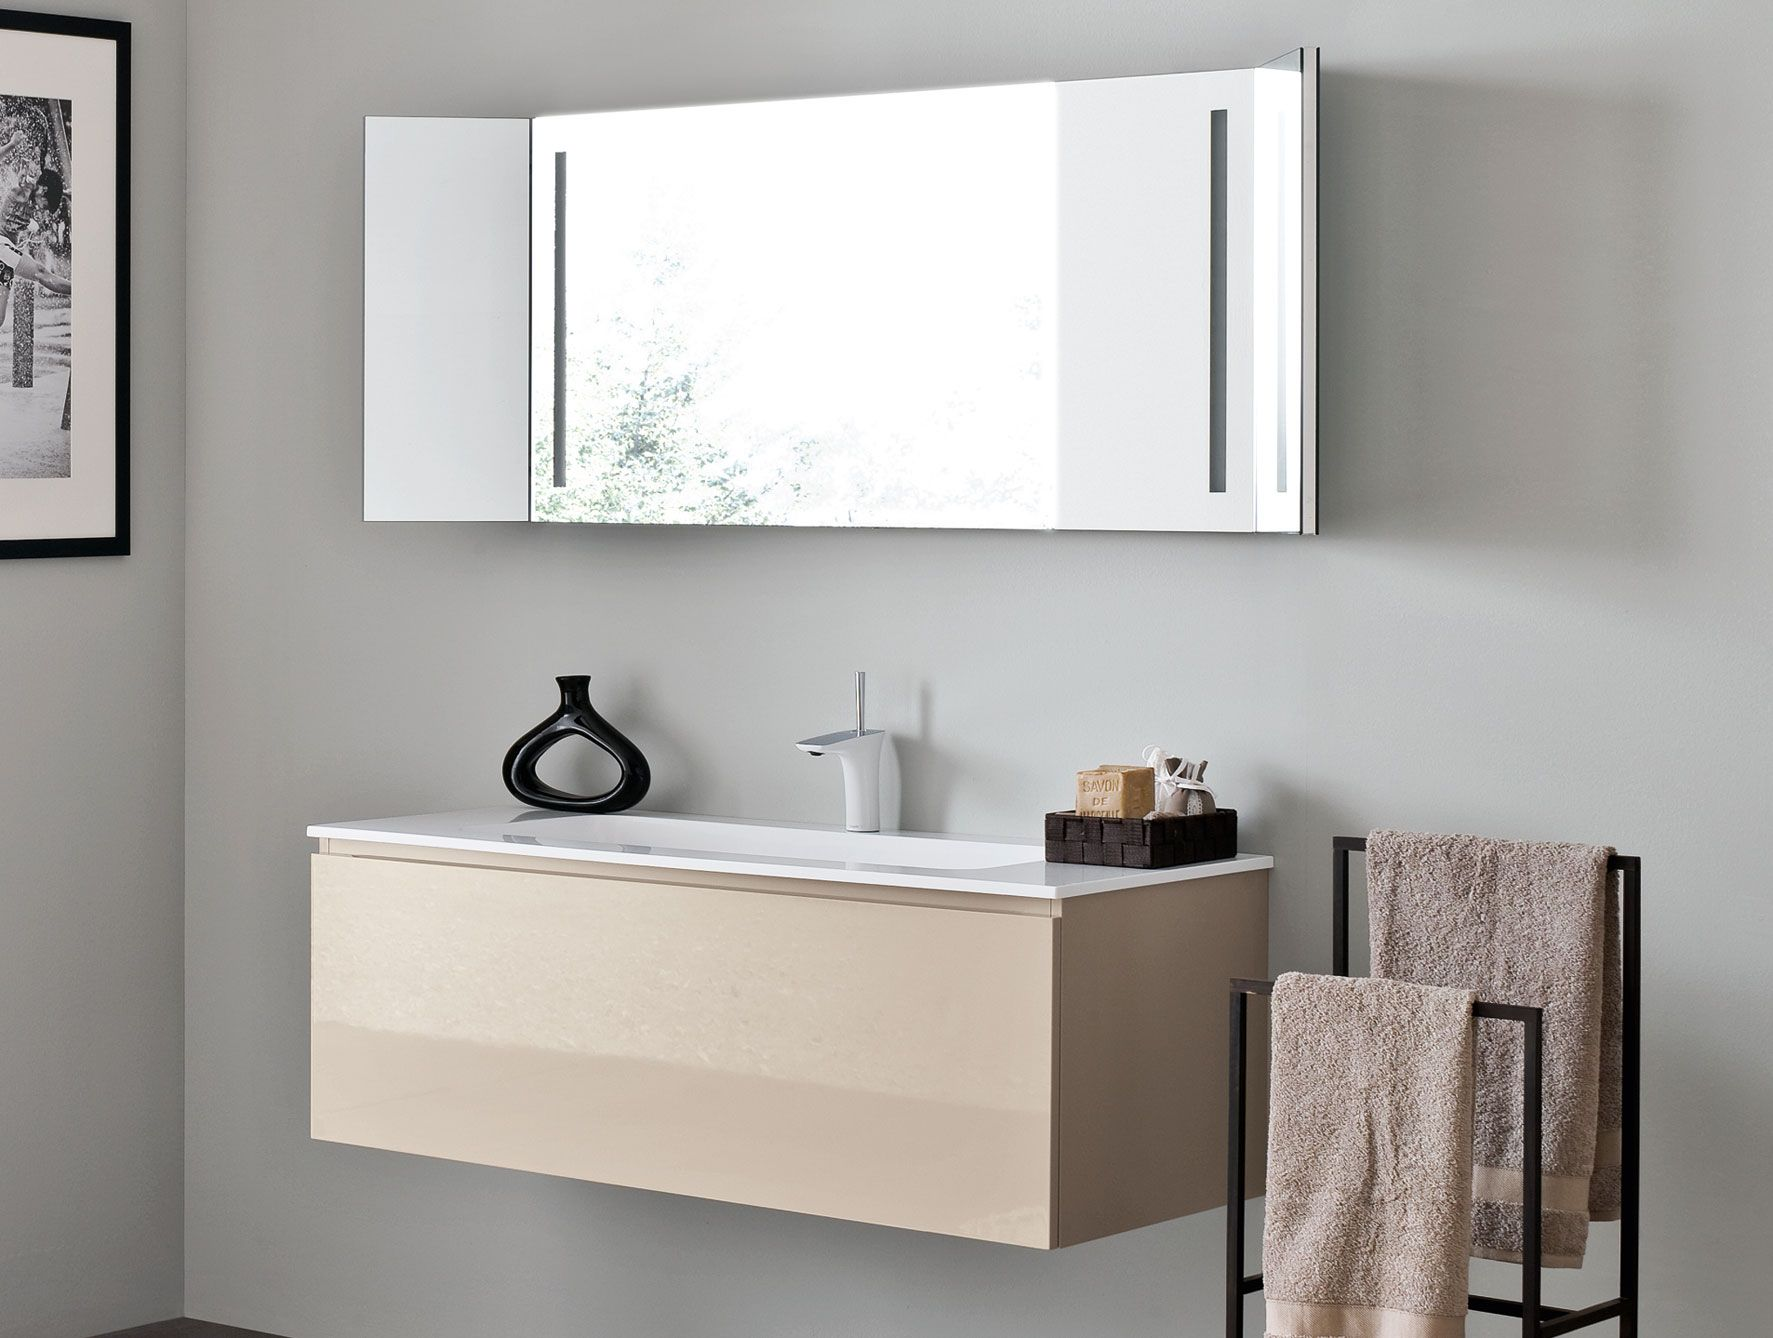 Modern Bathroom Vanities Small small-wall-mounted-bathroom-sinks | home decoration ideas